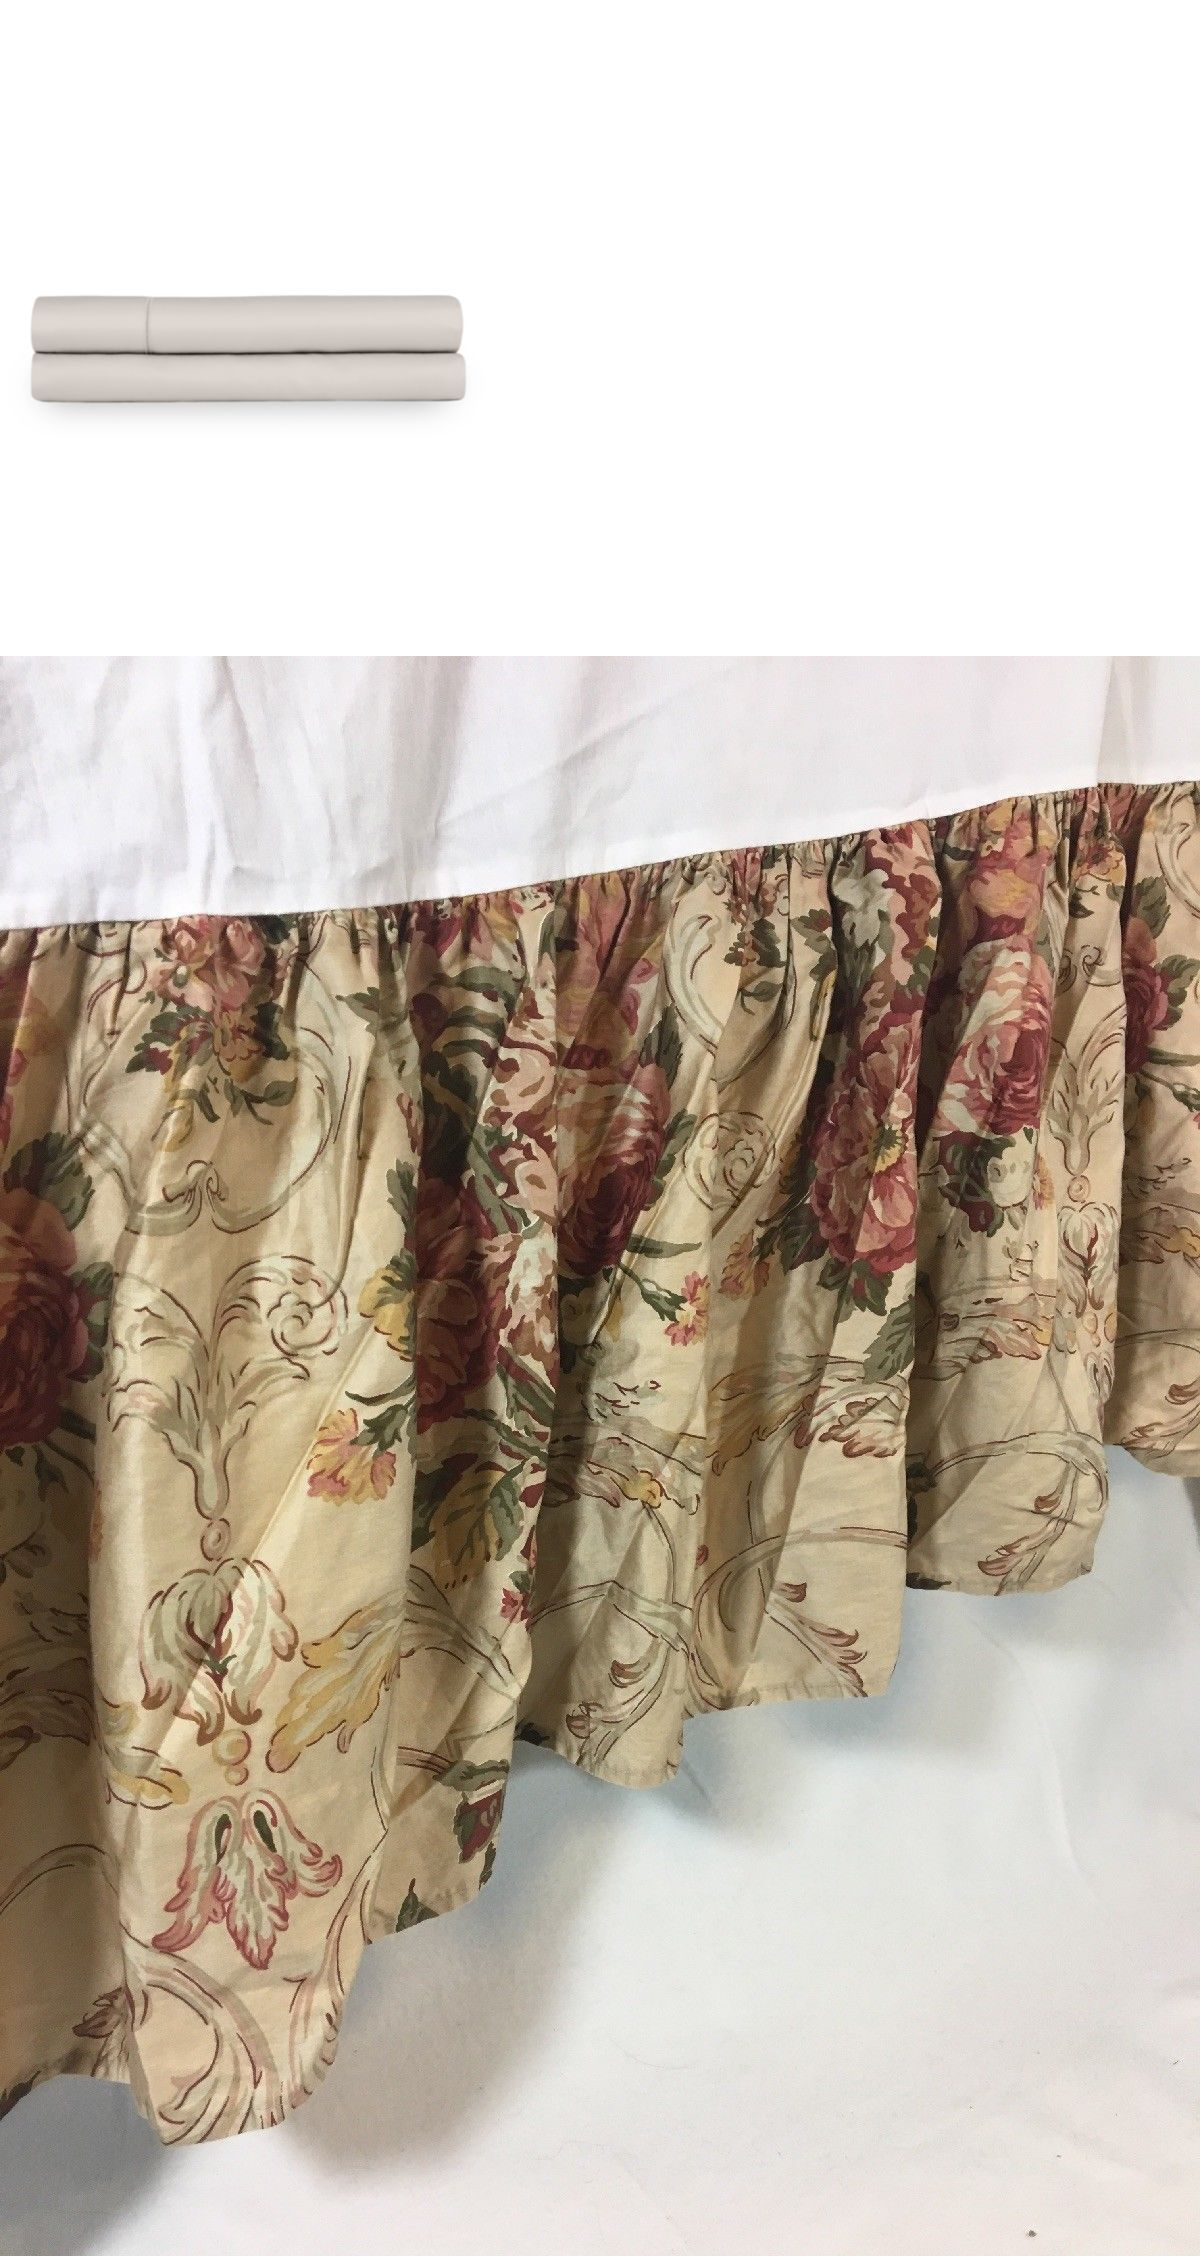 Bed Skirts 20450 Ralph Lauren Queen Bedskirt Tan Floral Roses Dust Ruffle Buy It Now Only 19 On Ebay Skirts Ralph Queen Bedskirt Dust Ruffle Bedskirt